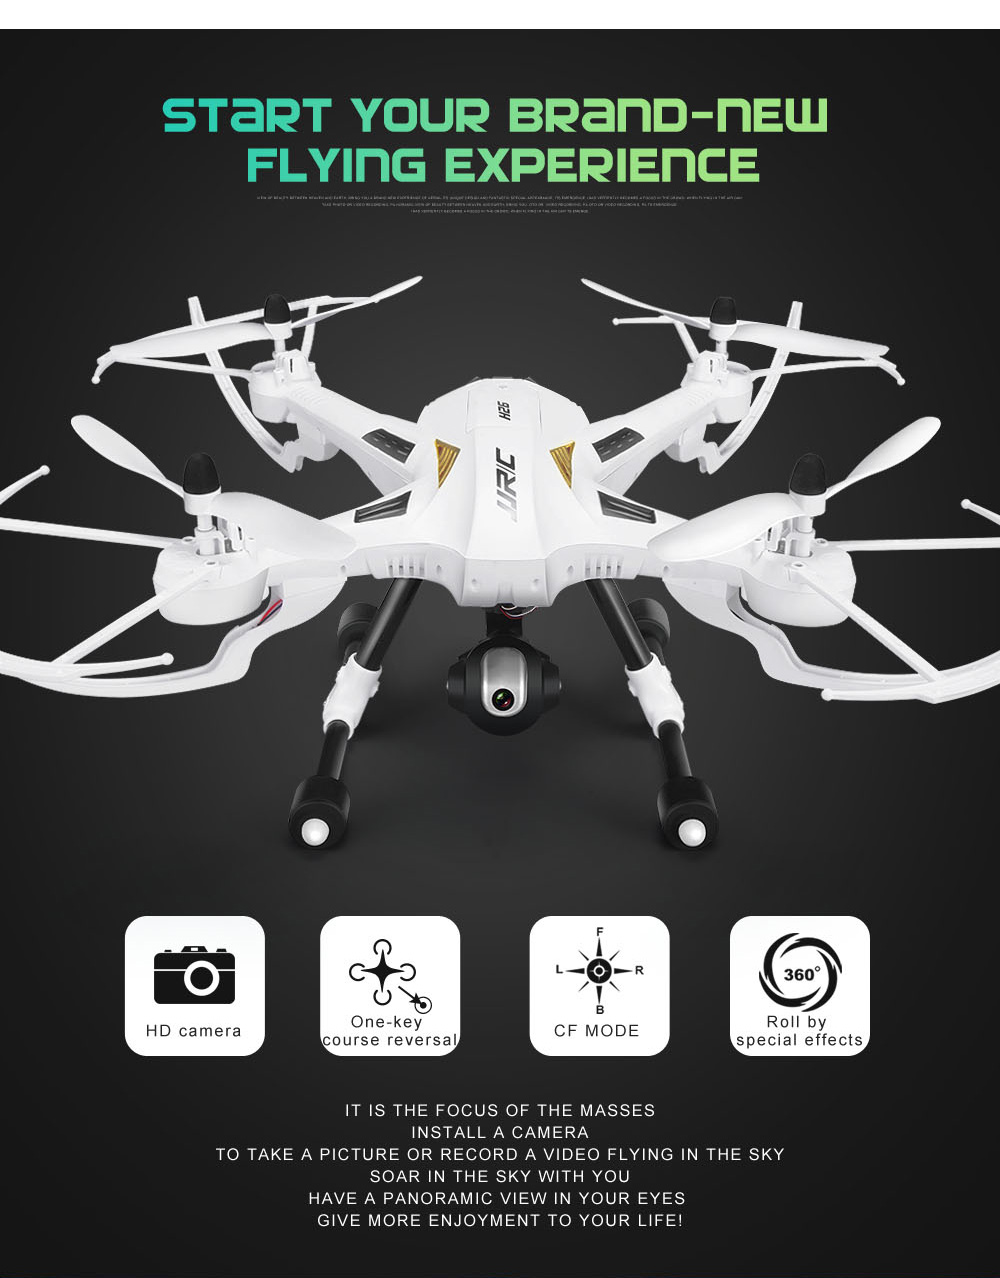 Jjrc H26w Drone Wifi Fpv With 720p Cam Rc Quadcopter 8599 And Free The Plane Sound System Mr V4 Multi Engine Pack Hd Camera 24g 4 Channel 6 Axis Gyro